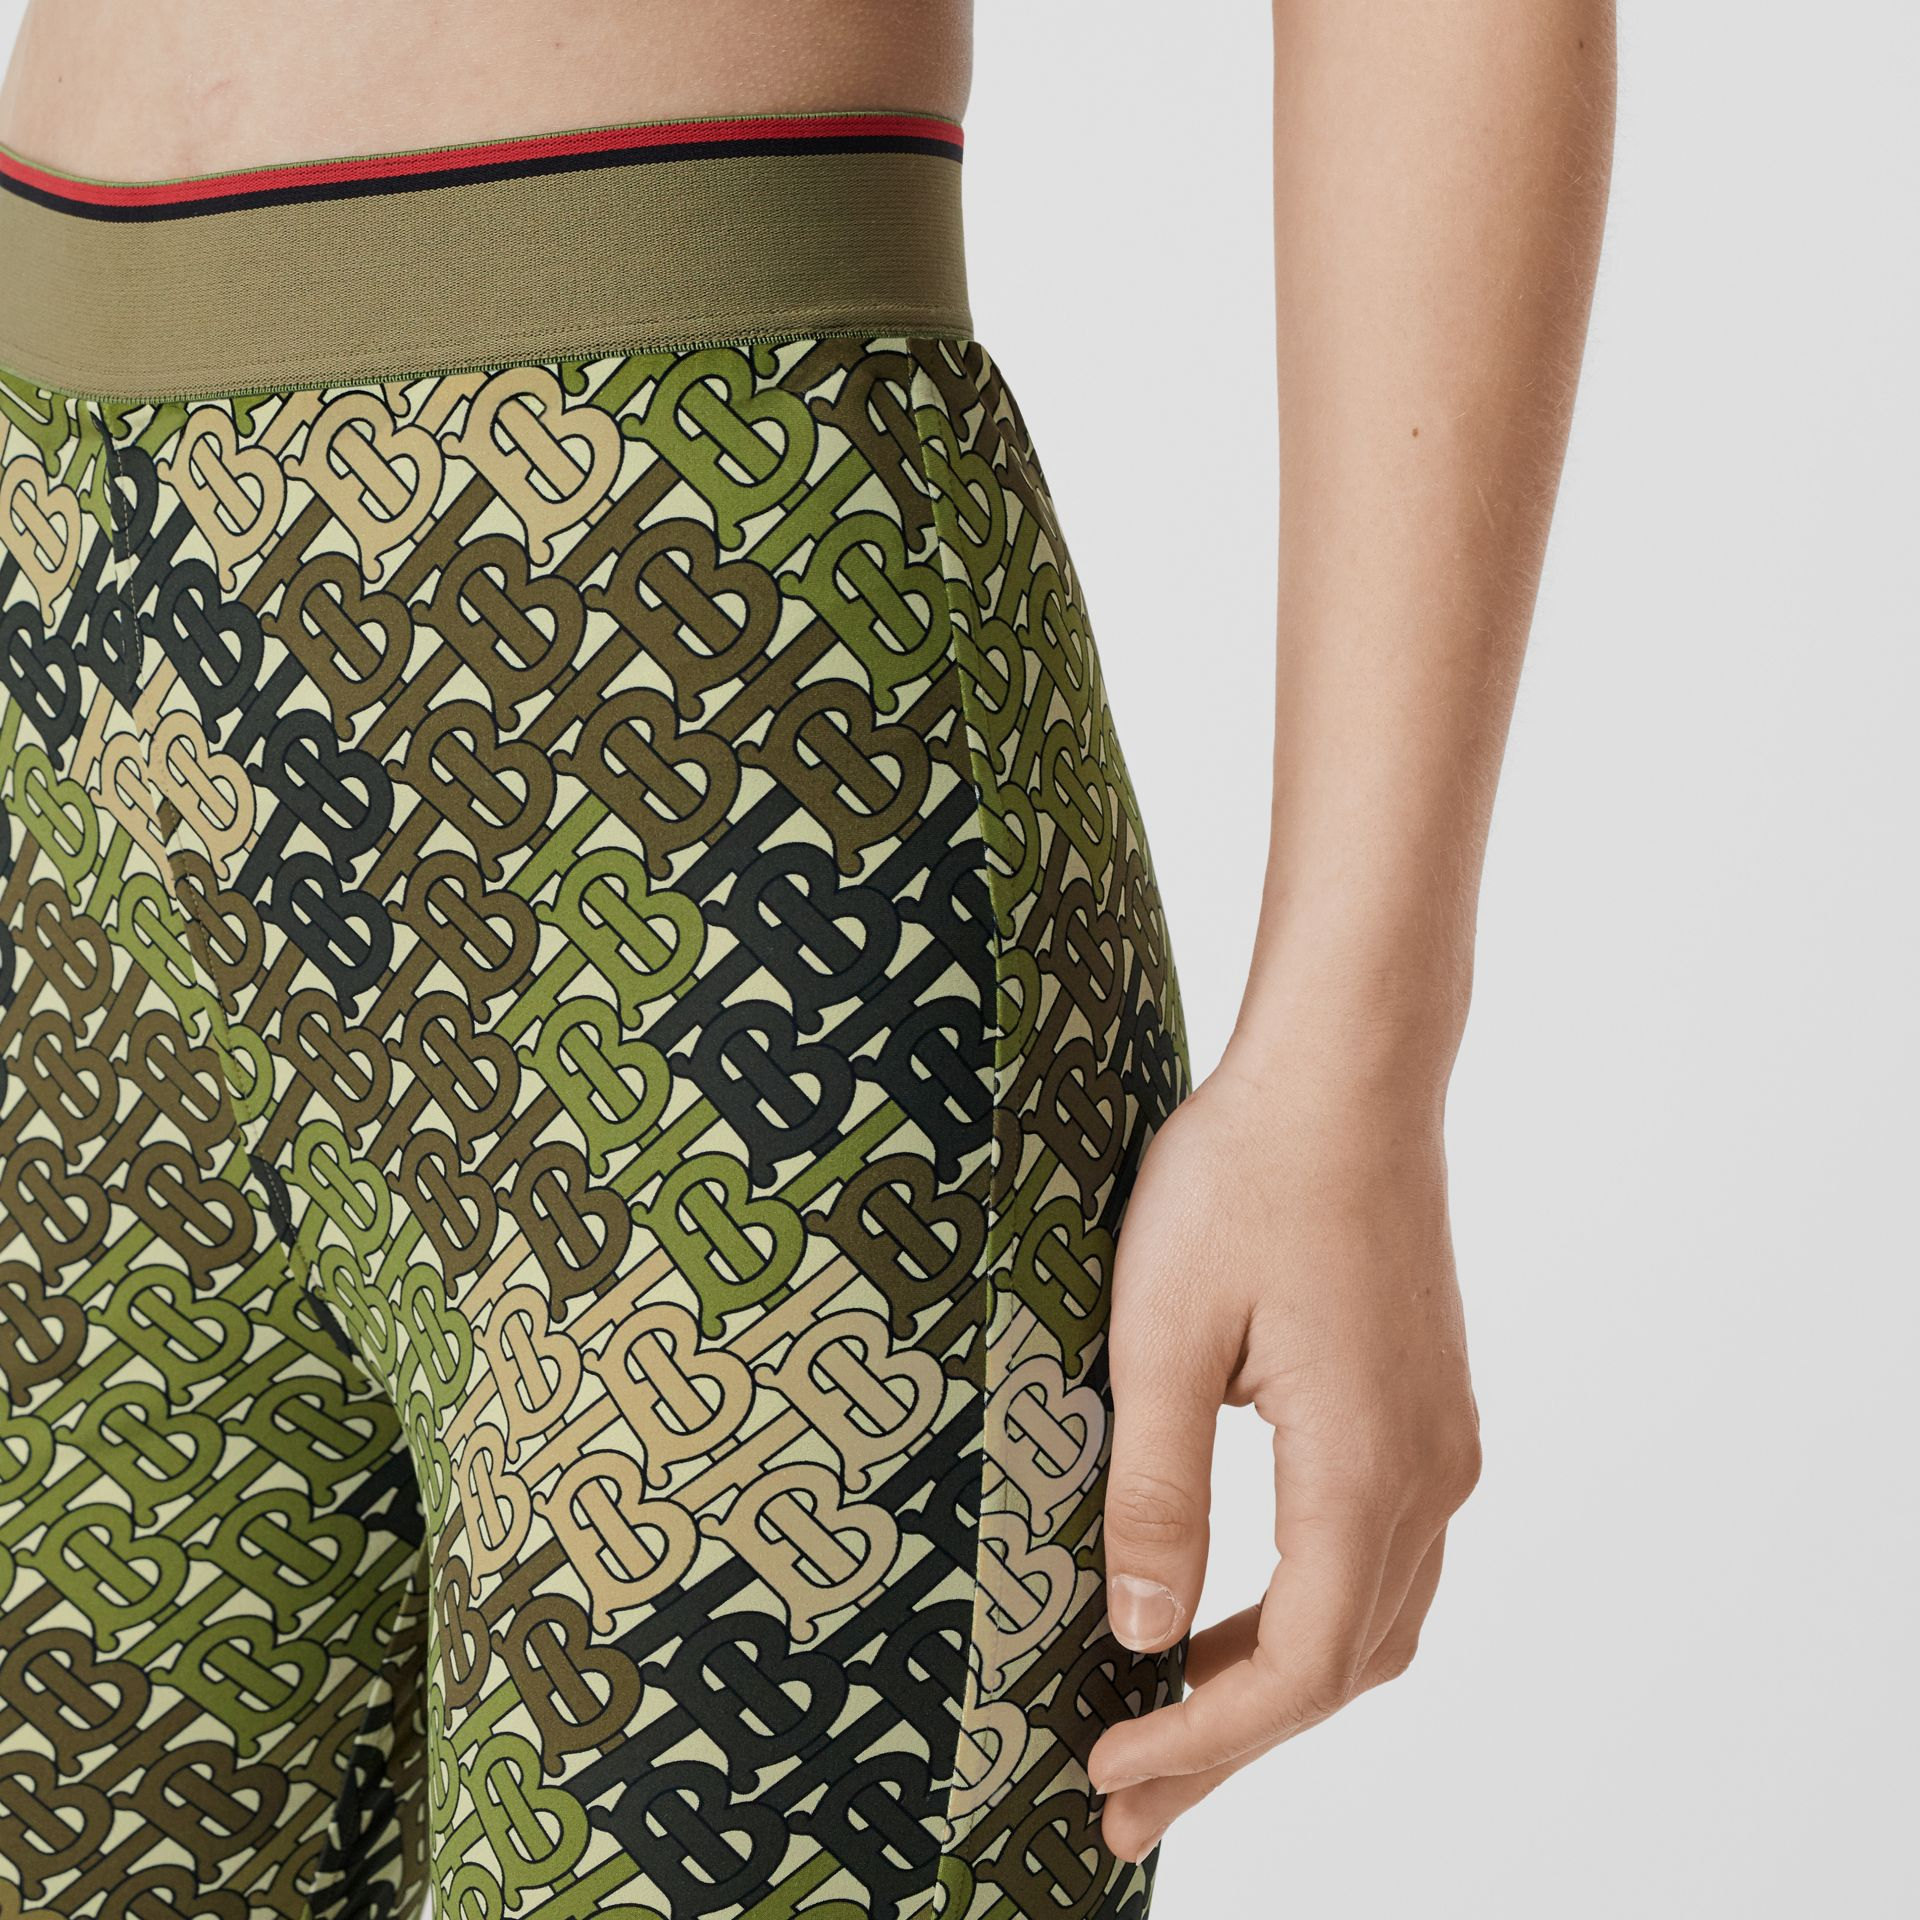 Monogram Print Stretch Jersey Leggings in Khaki Green - Women | Burberry Australia - gallery image 1